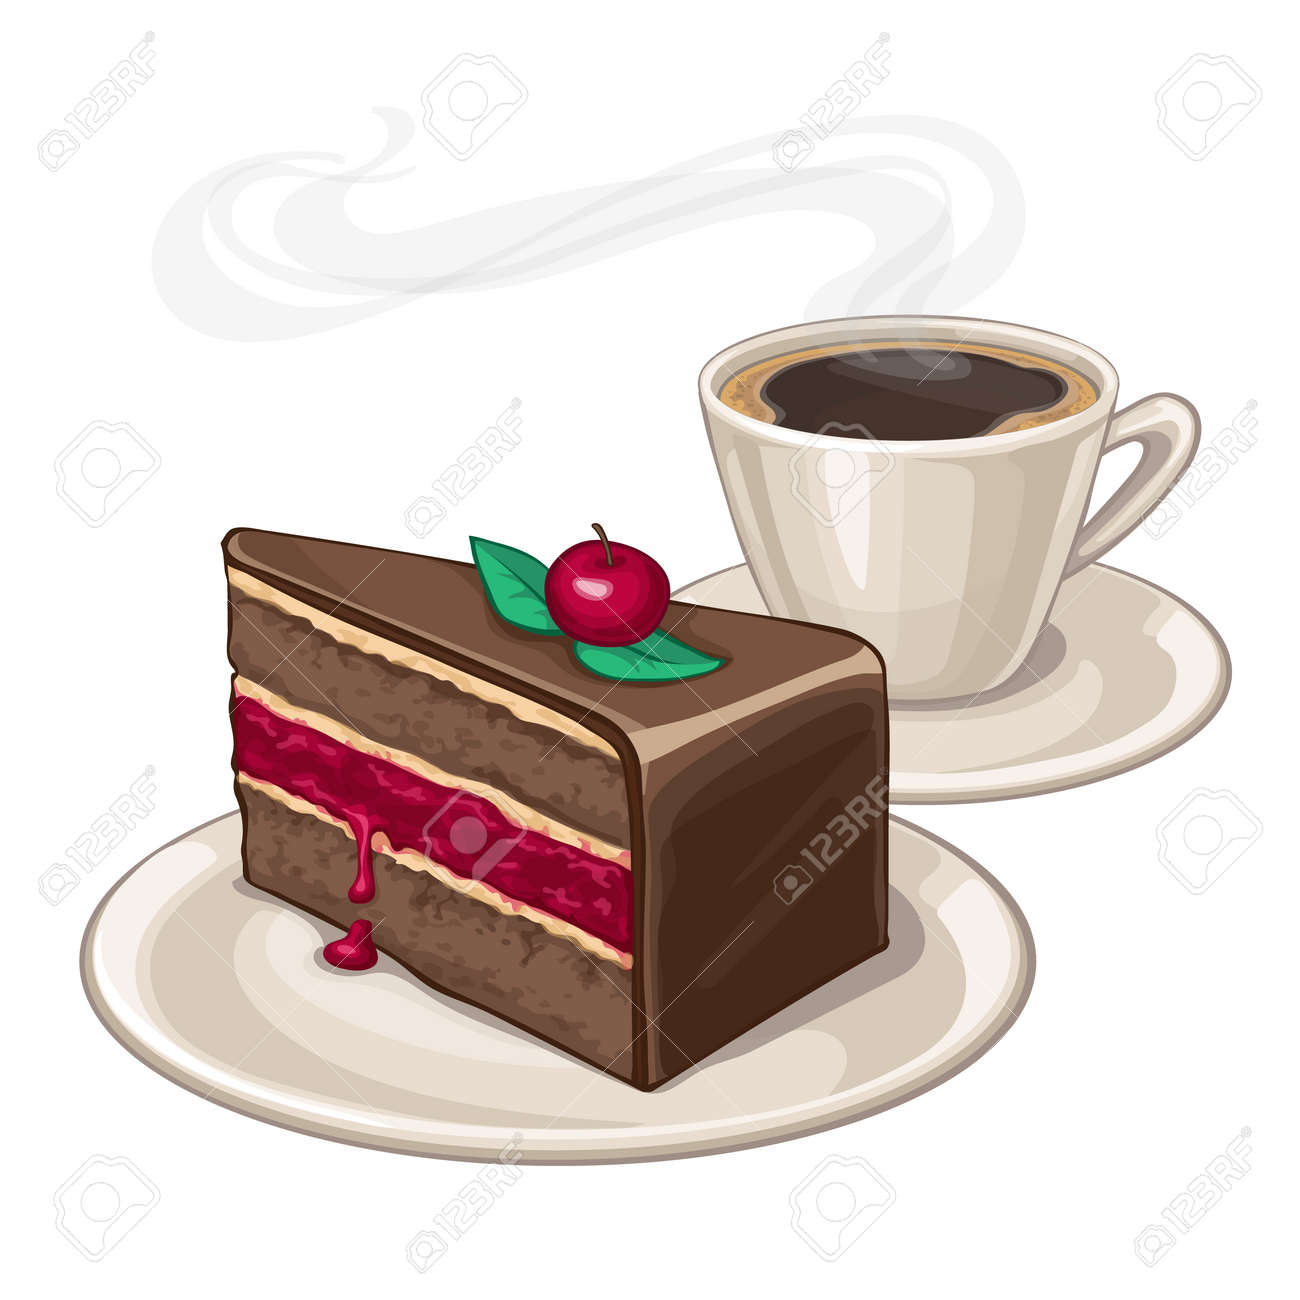 Cake on a plate and cup of coffee. Isolated on white background. - 55032958